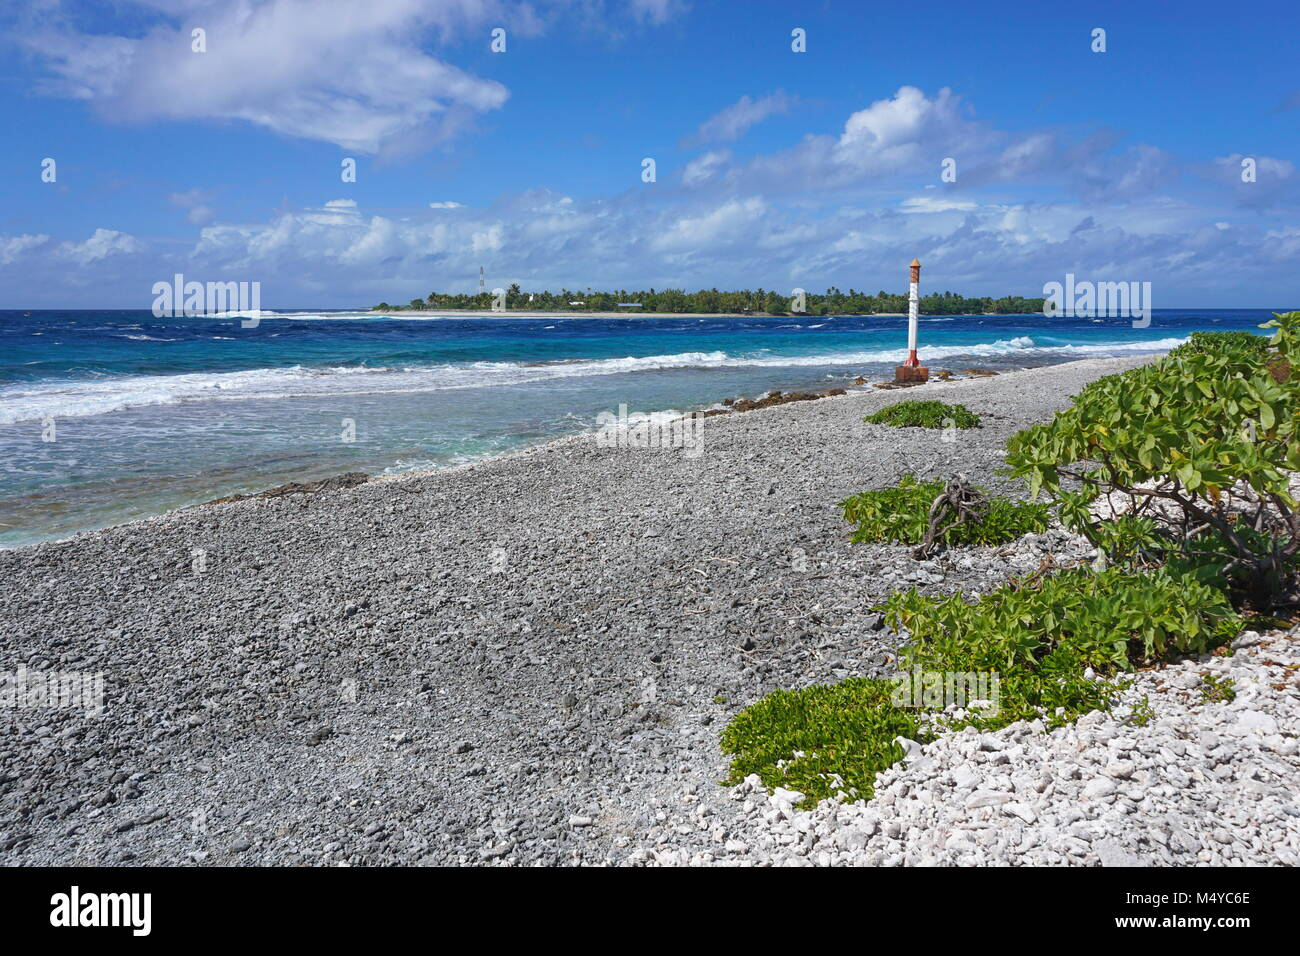 French Polynesia, atoll of Rangiroa the Tiputa channel, Tuamotus, south Pacific ocean - Stock Image